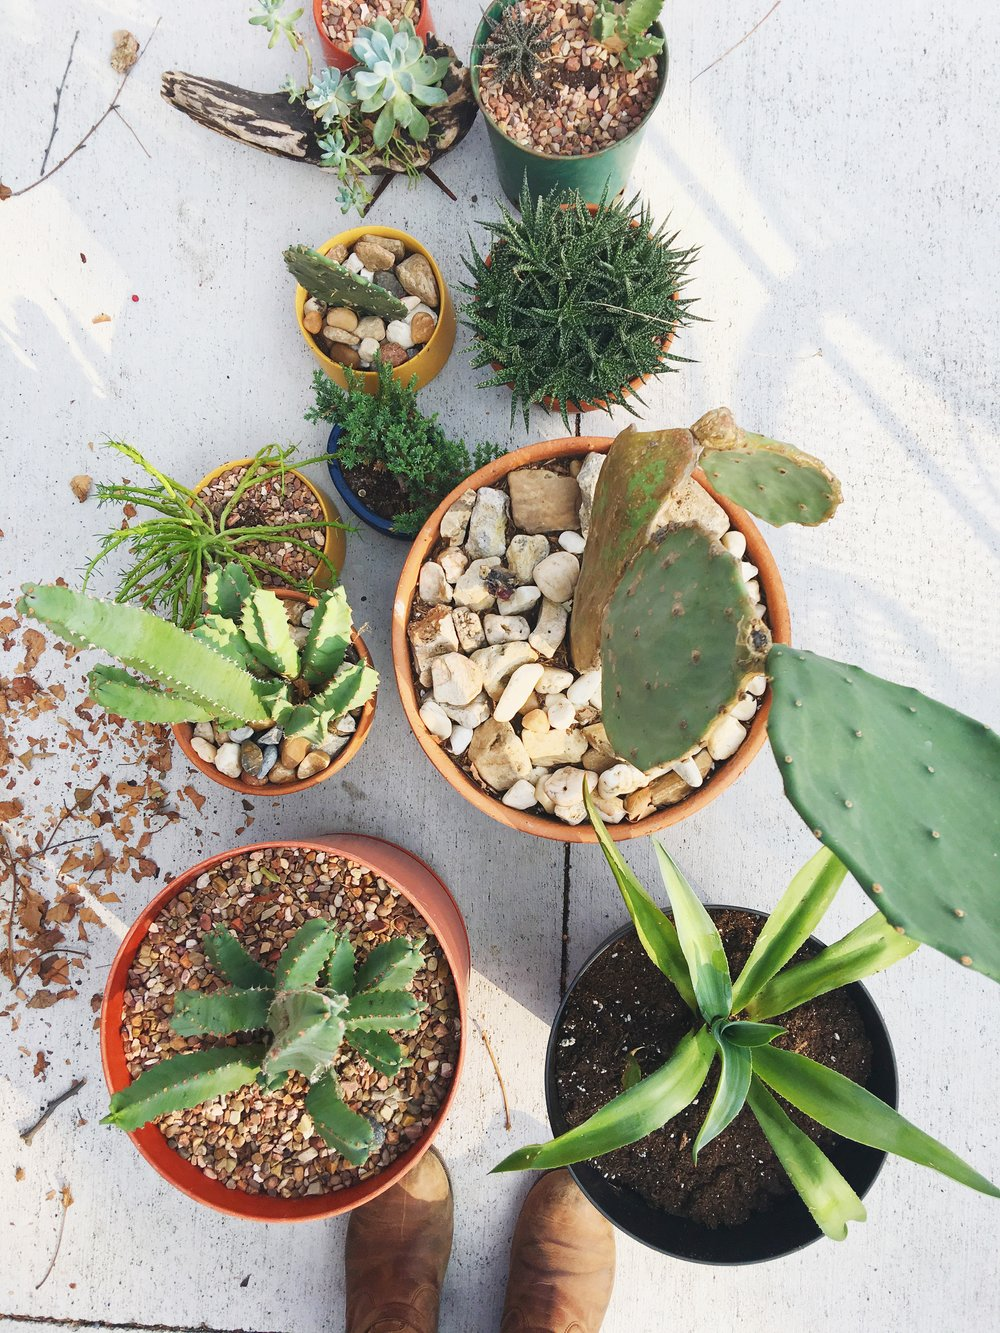 Palmer moved all of her succulents outside for their monthly watering! Want to not think about when you need to water your succulents? Get our  2018 Succulent Care Calendar  and let us teach you!